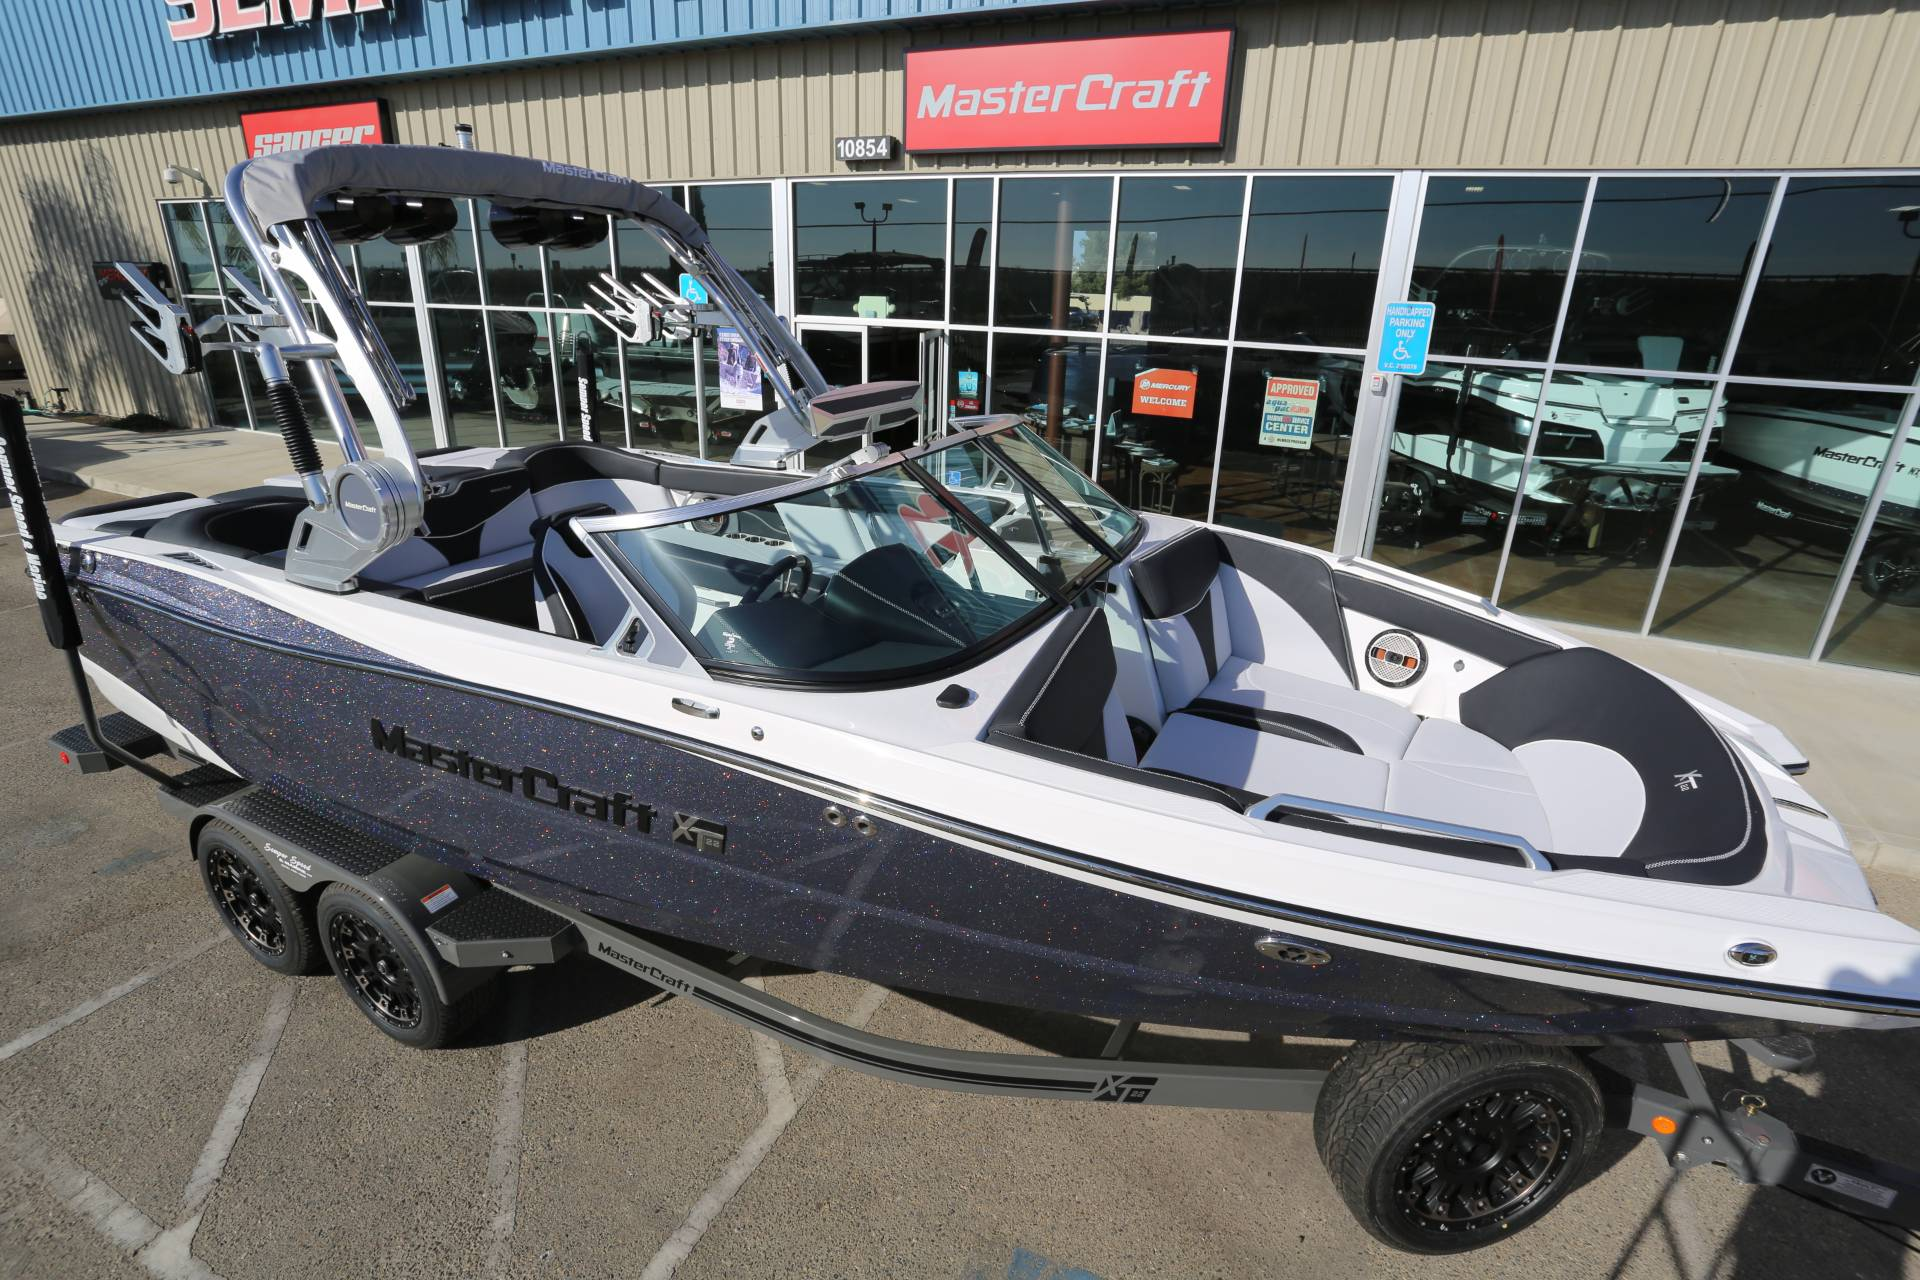 2021 Mastercraft XT22 in Madera, California - Photo 29